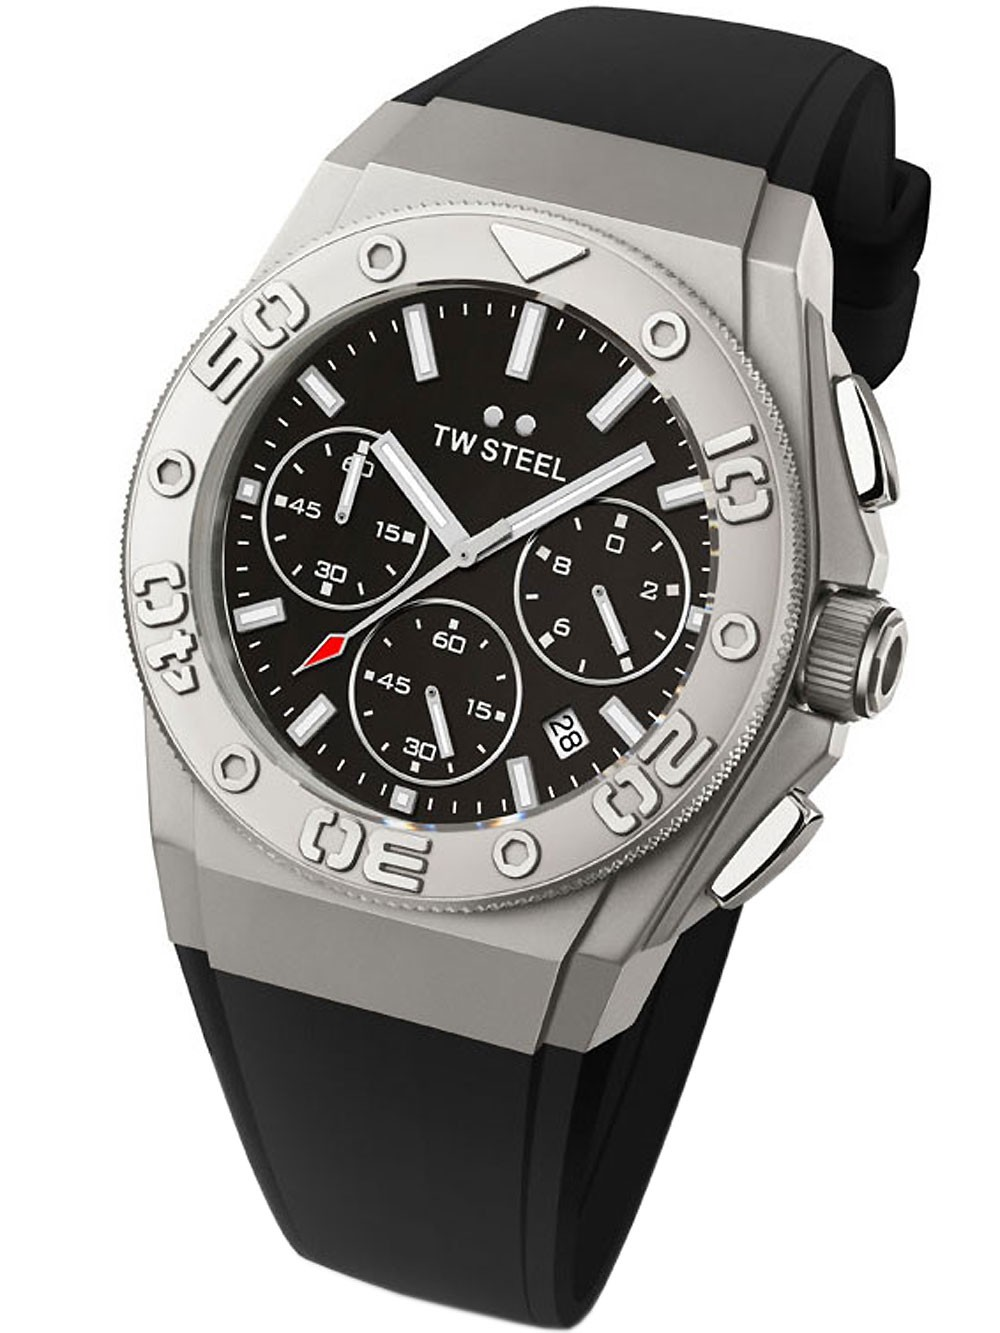 montres chrono12 tw steel ce5008 ceo diver chronograph 44mm 10atm. Black Bedroom Furniture Sets. Home Design Ideas